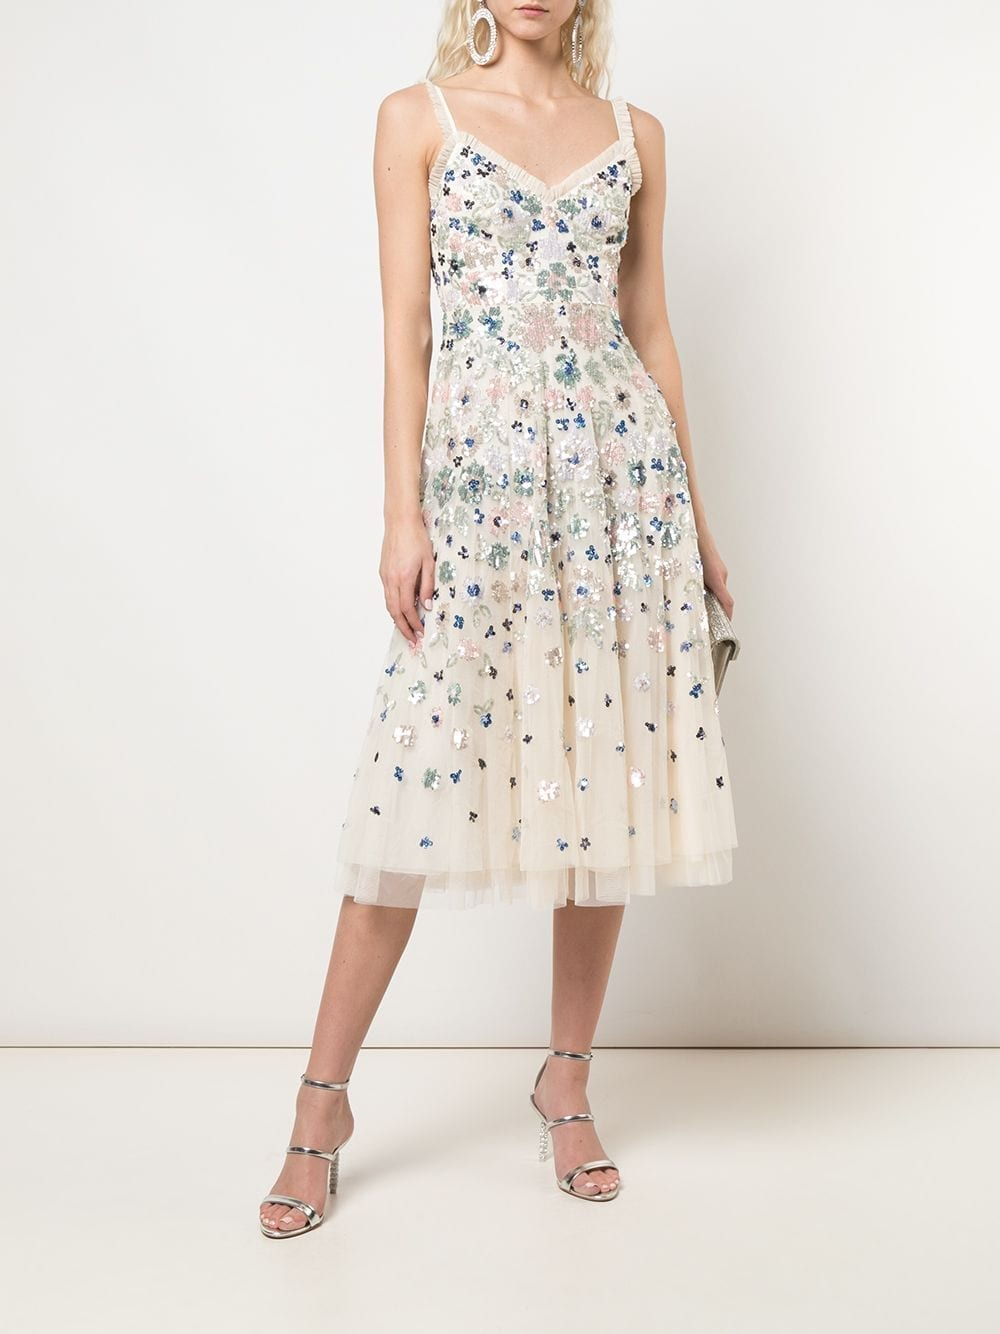 NEEDLE & THREAD Sequin-Embellished A-line Midi Dress